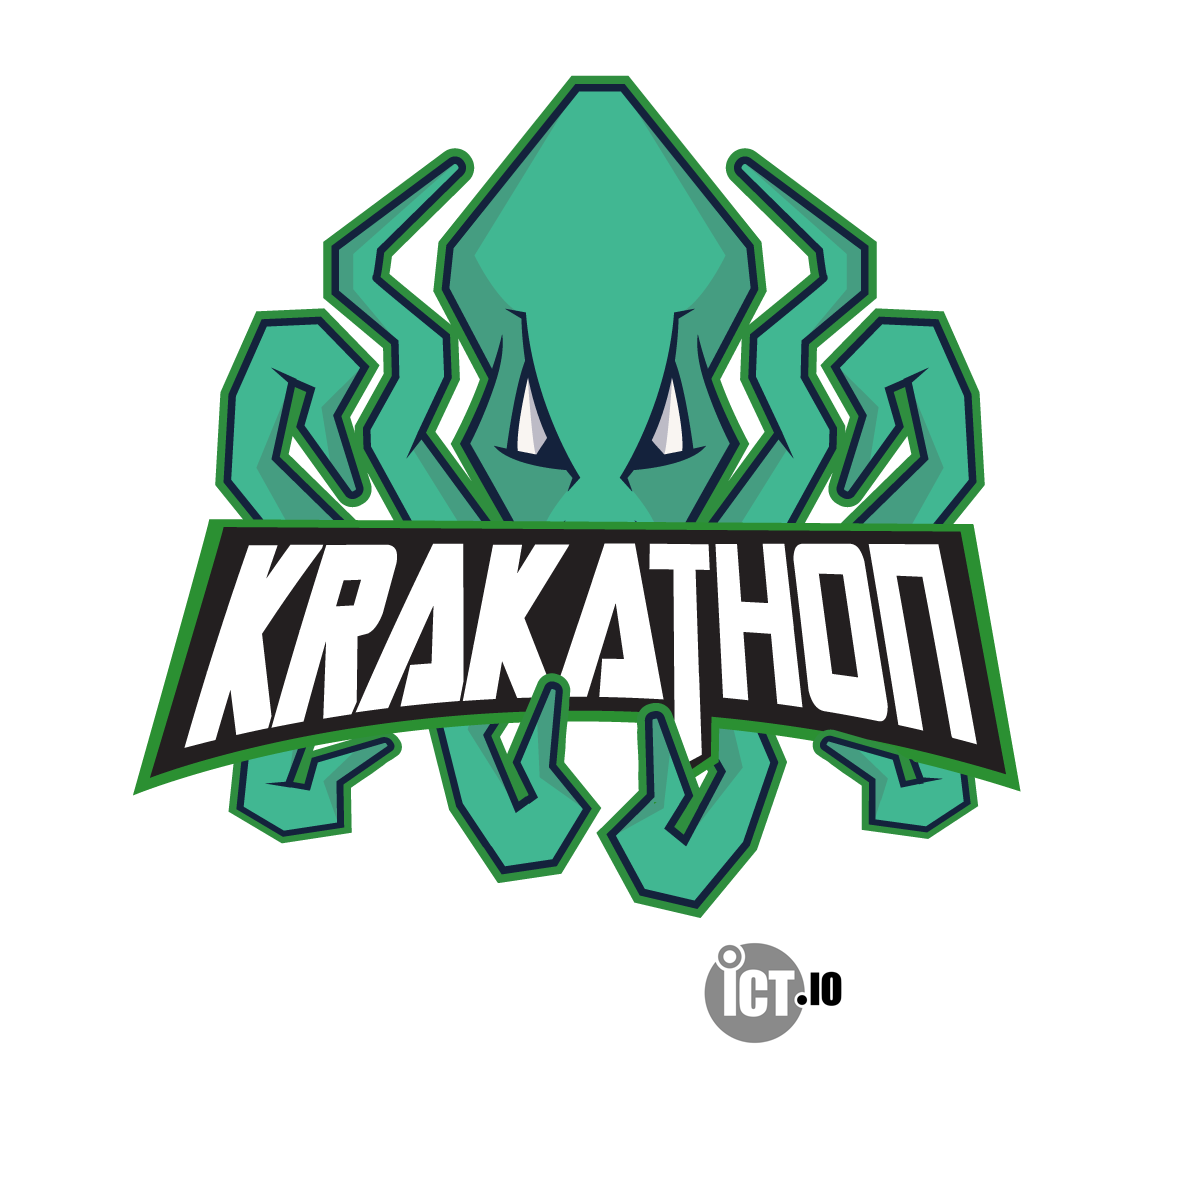 The Krakathon is like a hackathon but with a Kraken and a treasure!